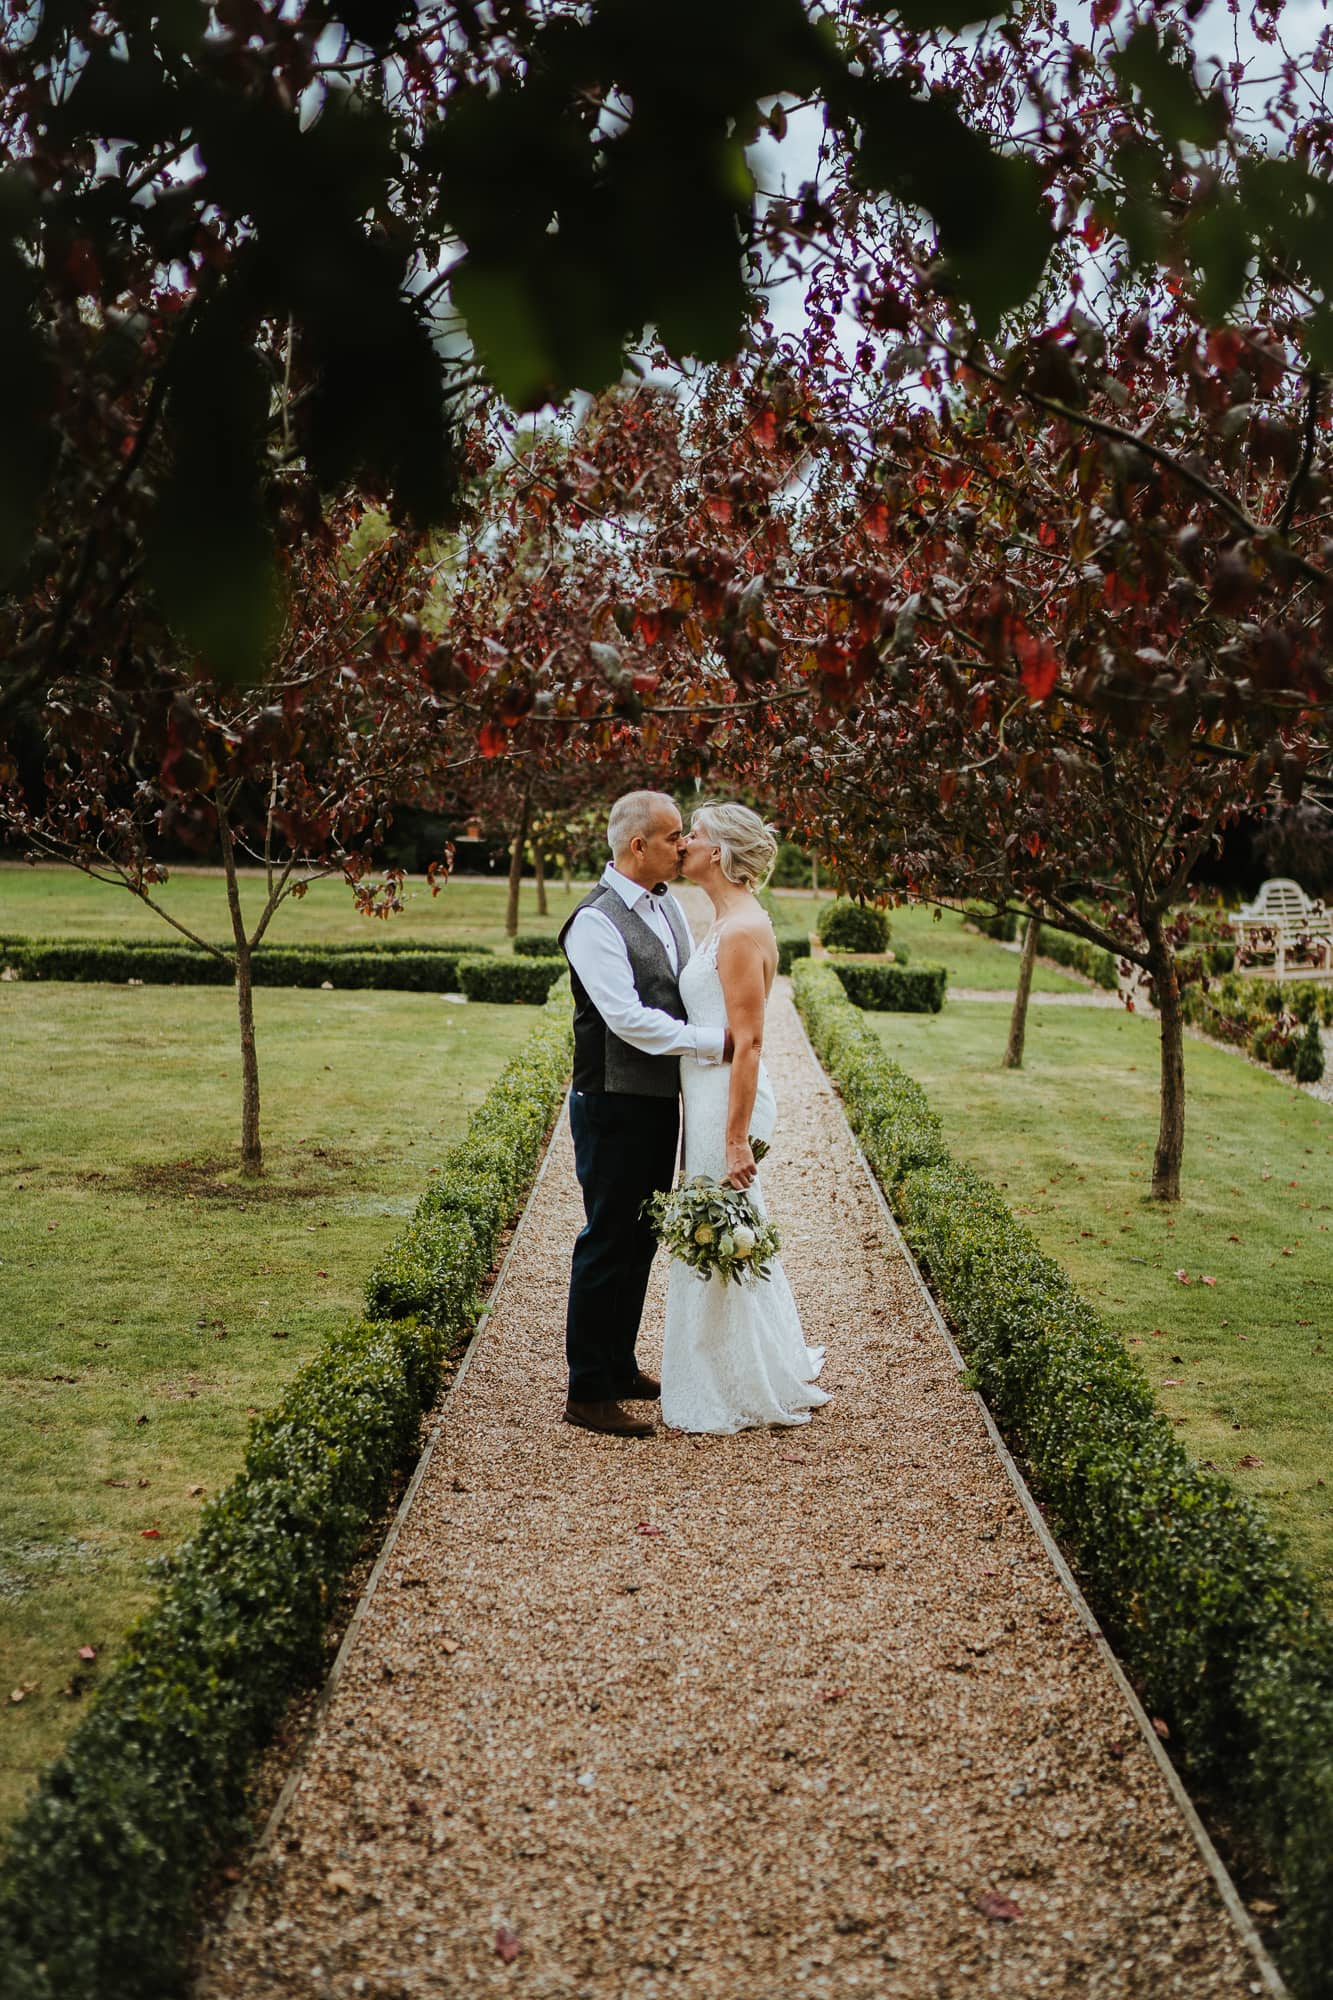 Bride and Groom kissing under an arch of trees